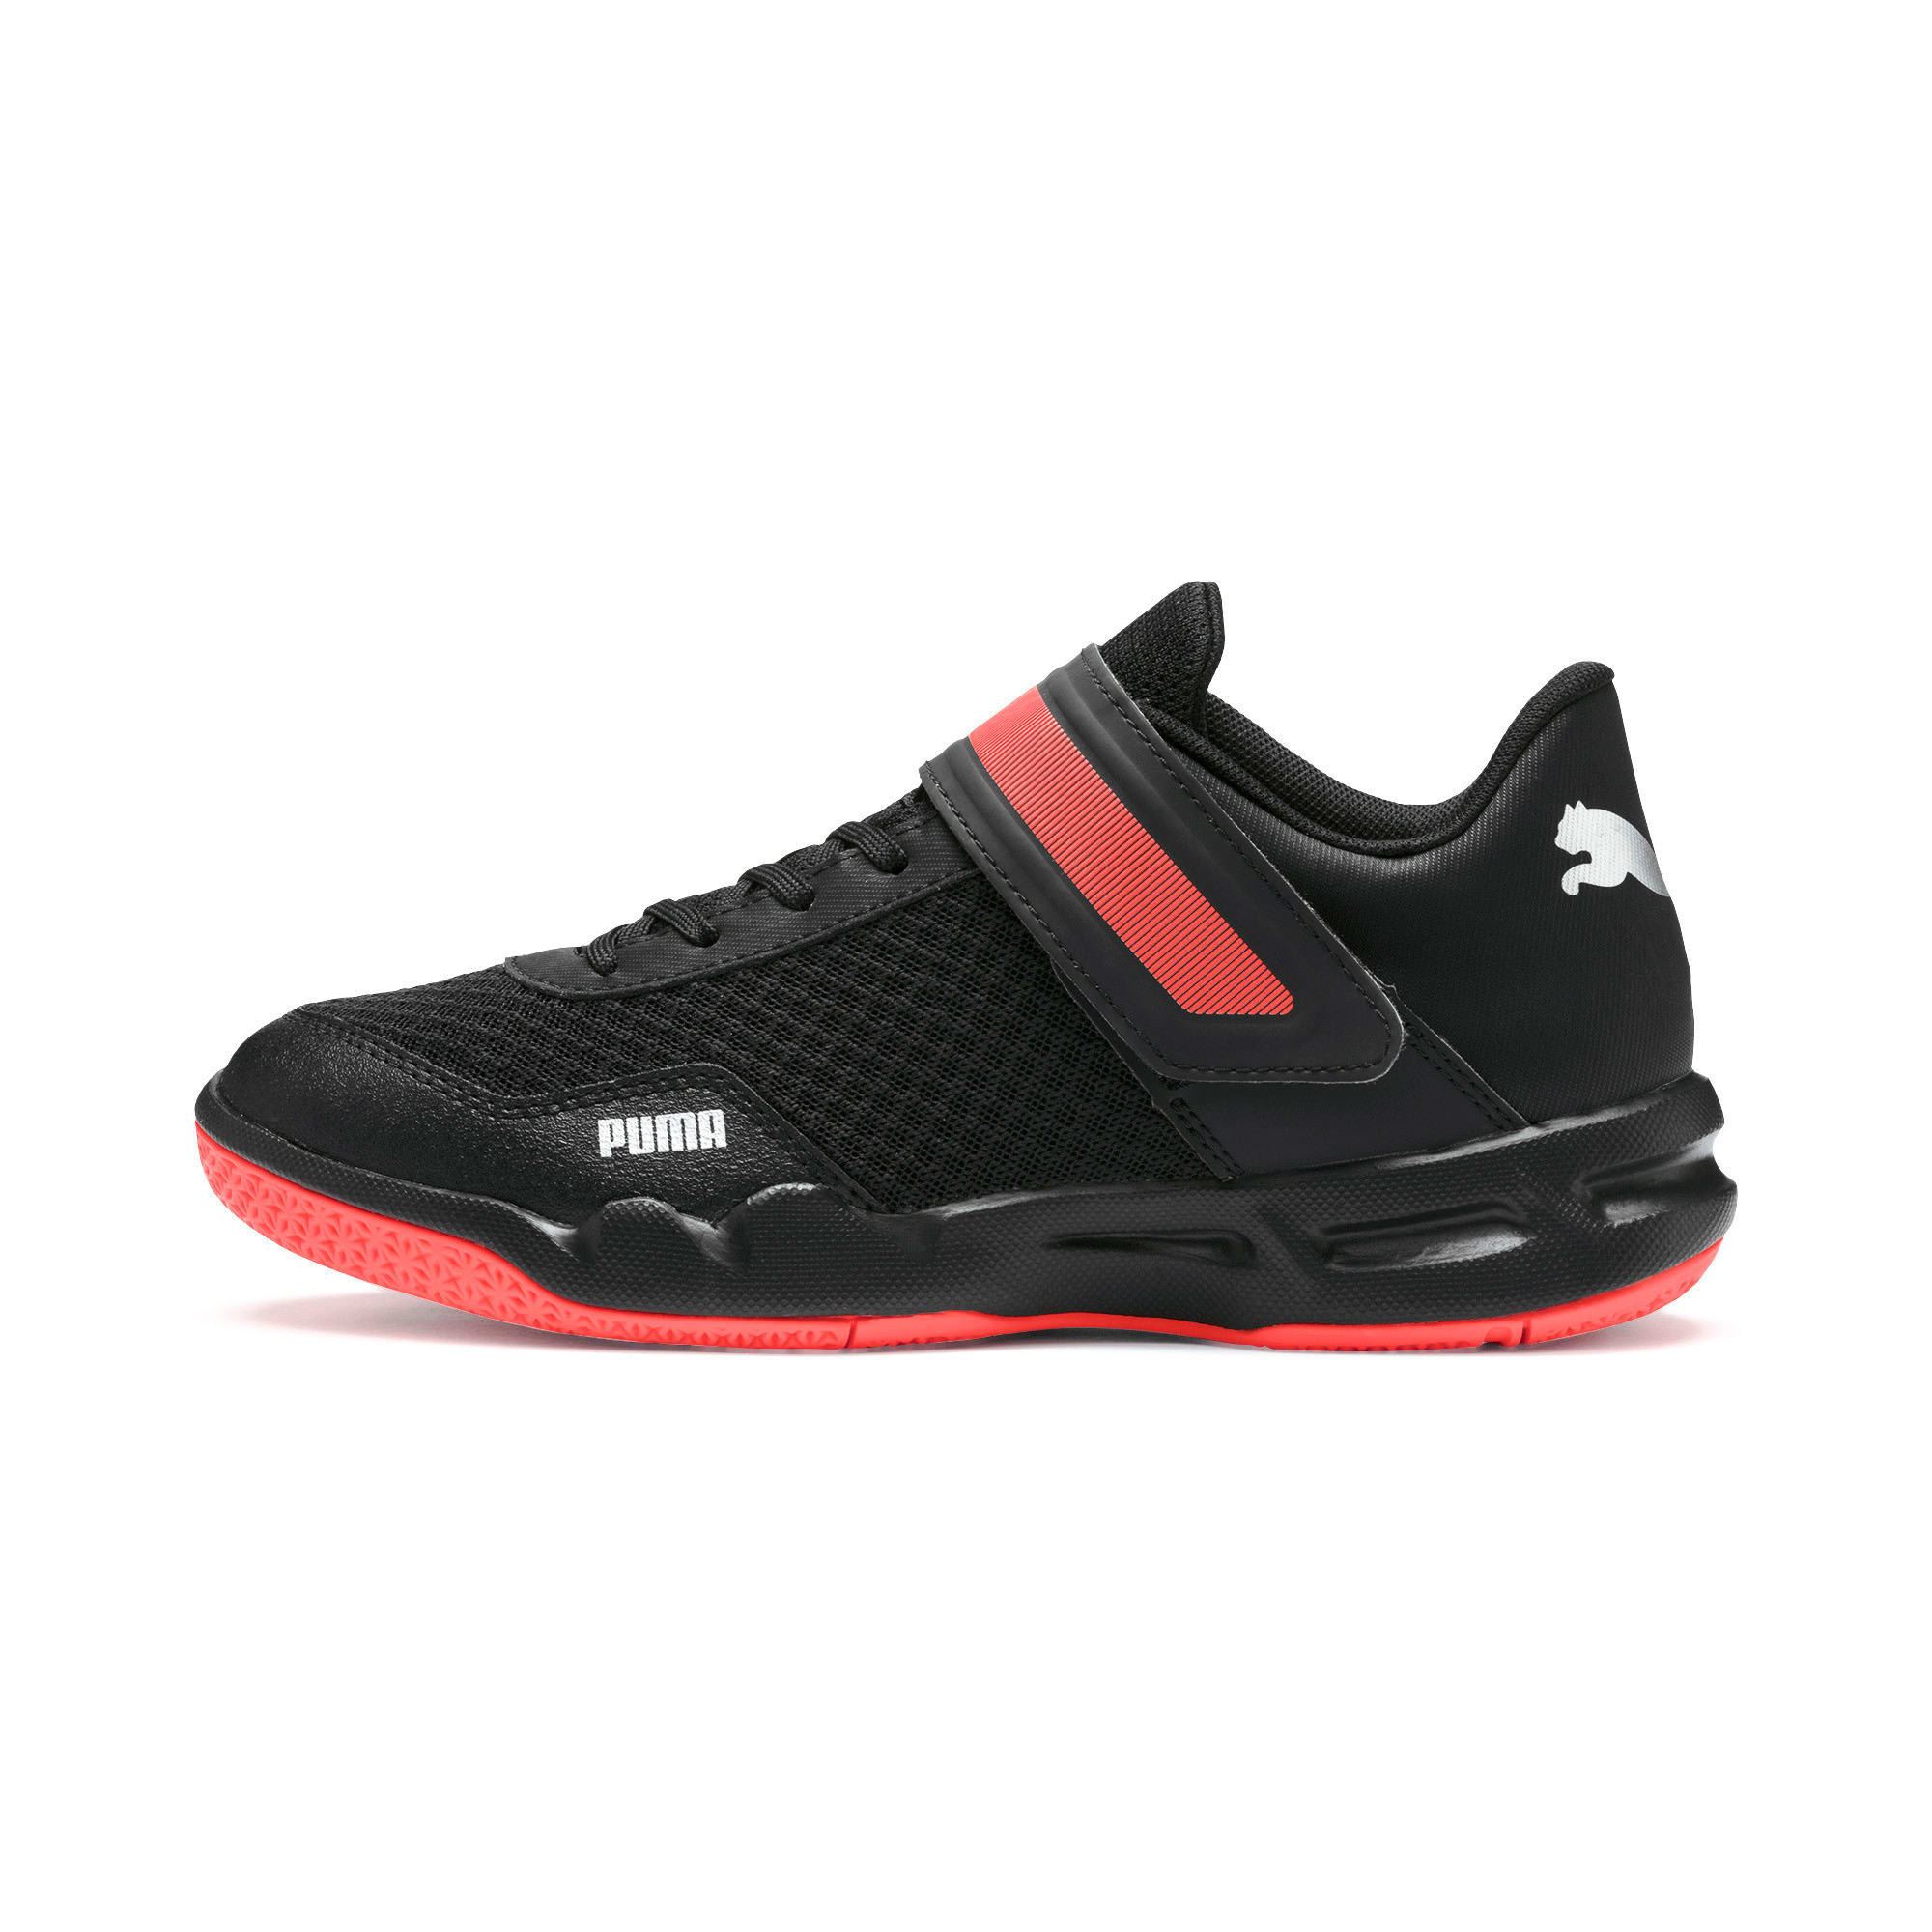 Thumbnail 1 of Rise XT 4 Youth Sneaker, Puma Black-Silver-Nrgy Red, medium